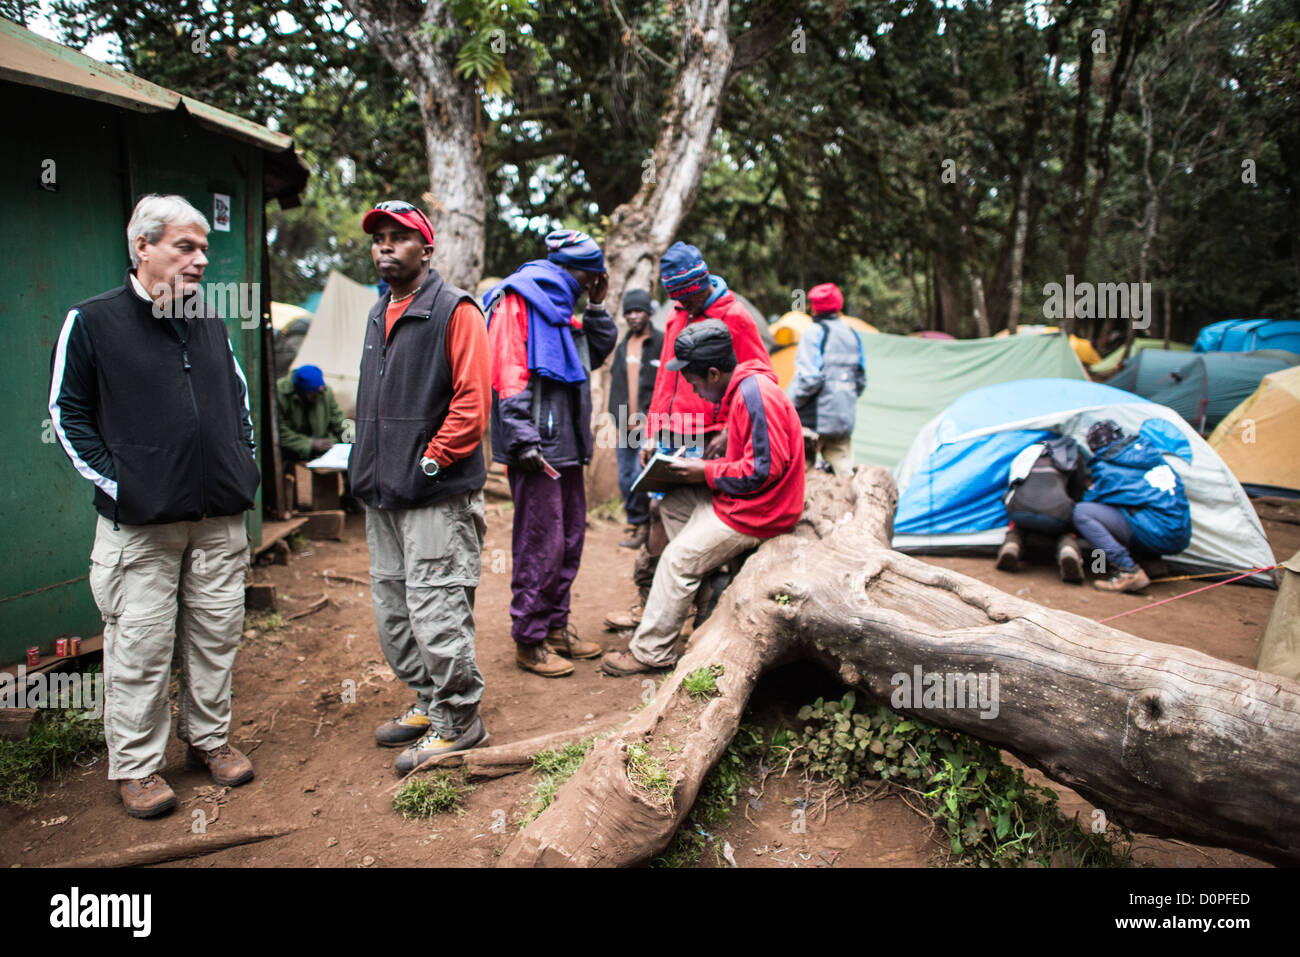 MT KILIMANJARO, Tanzania - Relaxing at Big Tree Camp (formally known as Forest Camp) on the first night of a climb - Stock Image